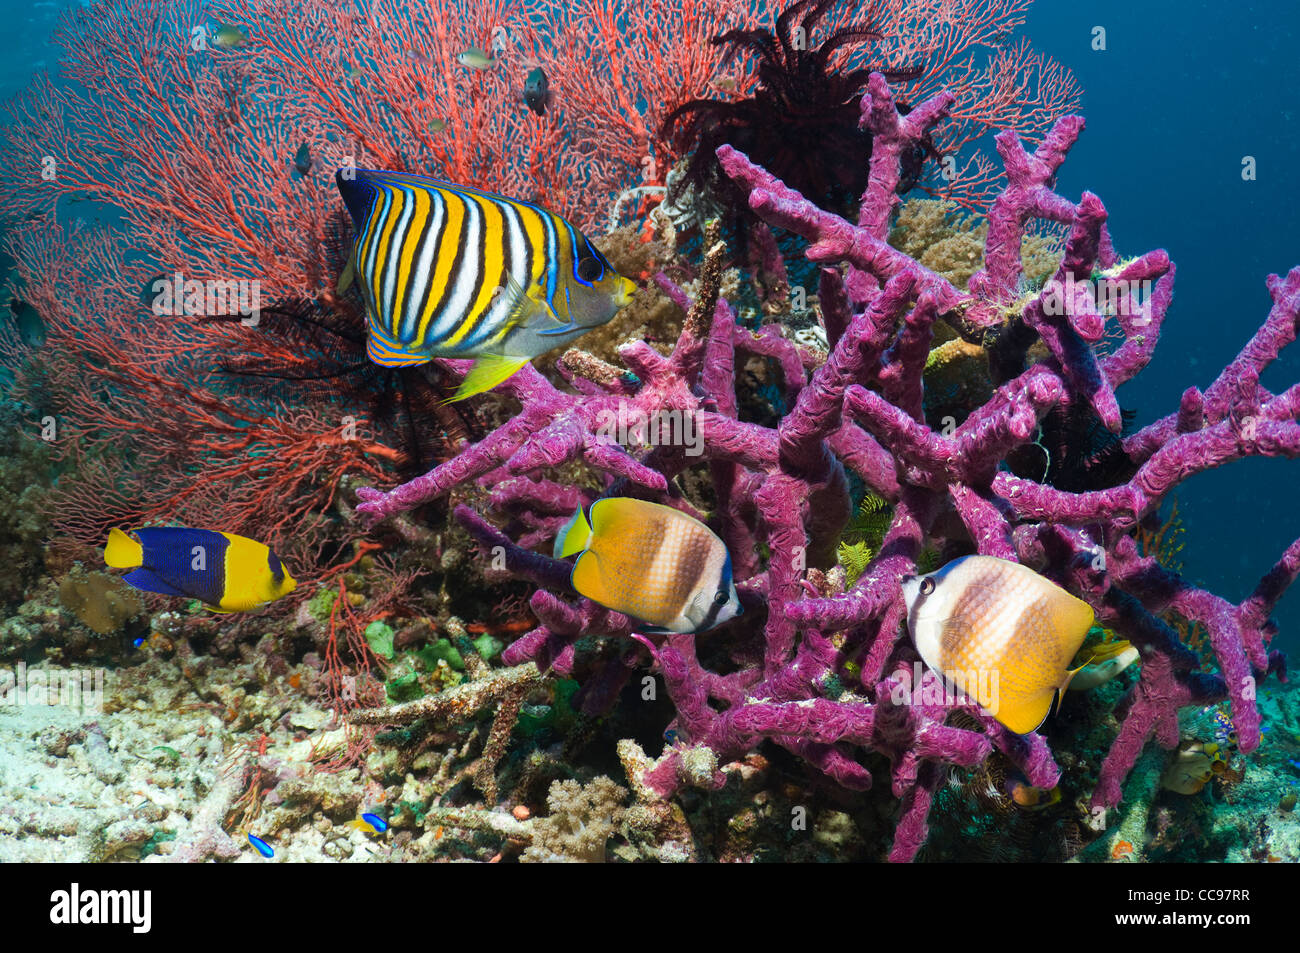 Regal angelfish and Klein's butterflyfish on coral reef - Stock Image